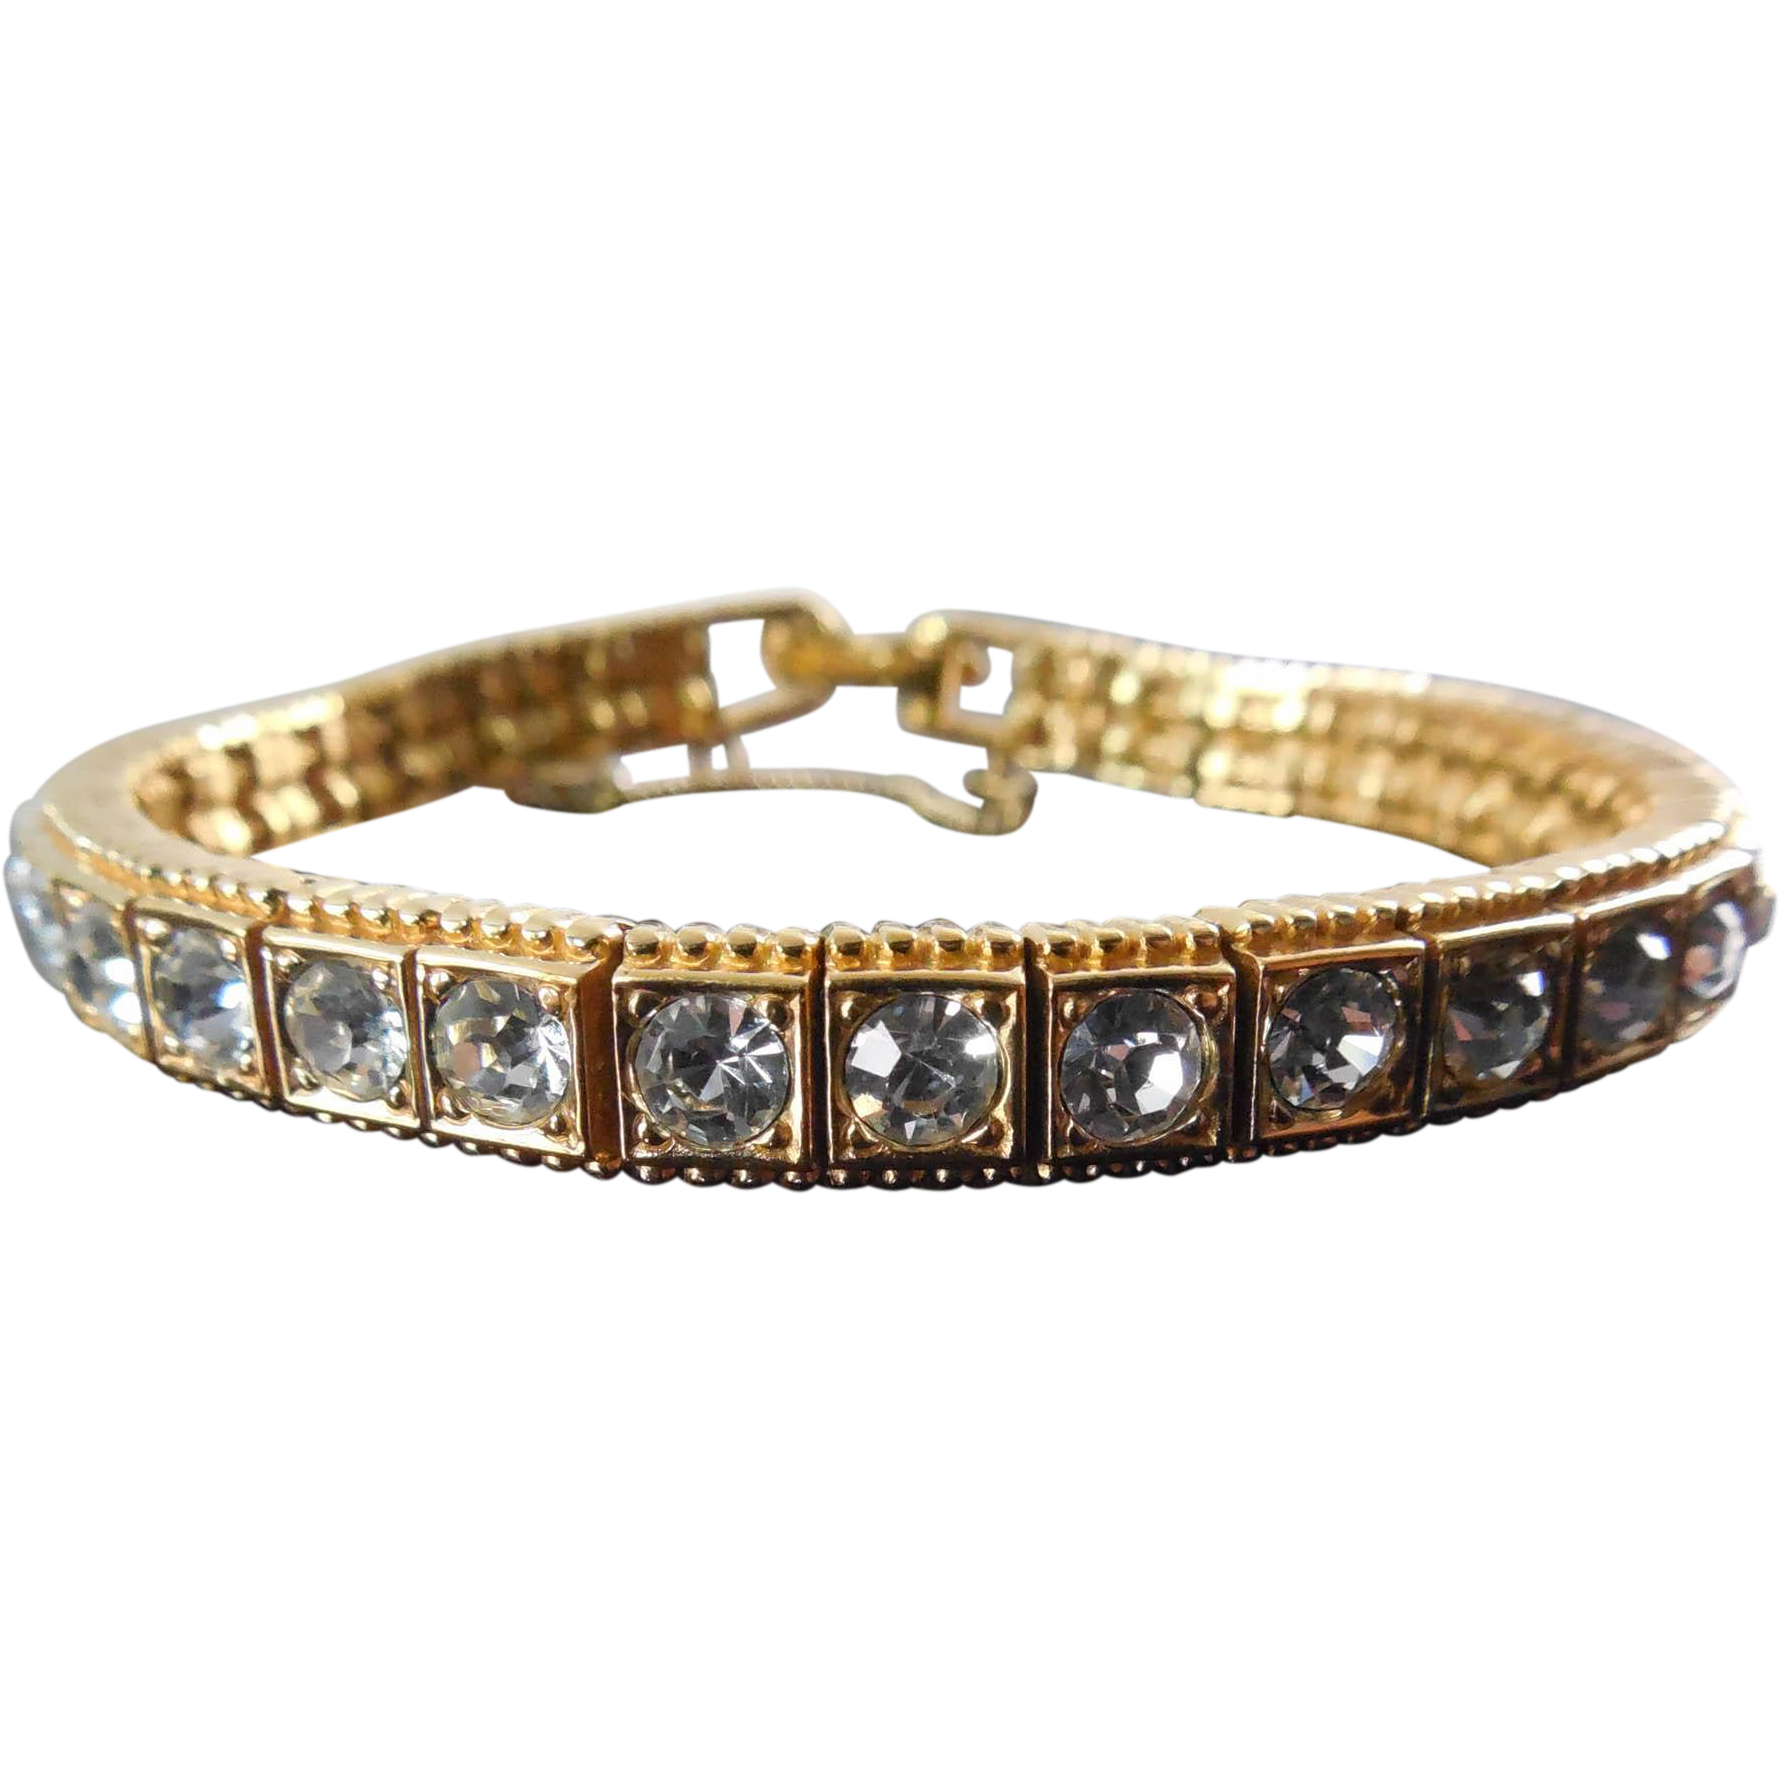 Signed Ciner Bracelet - Tennis Bracelet With Clear Stones - Gorgeous!